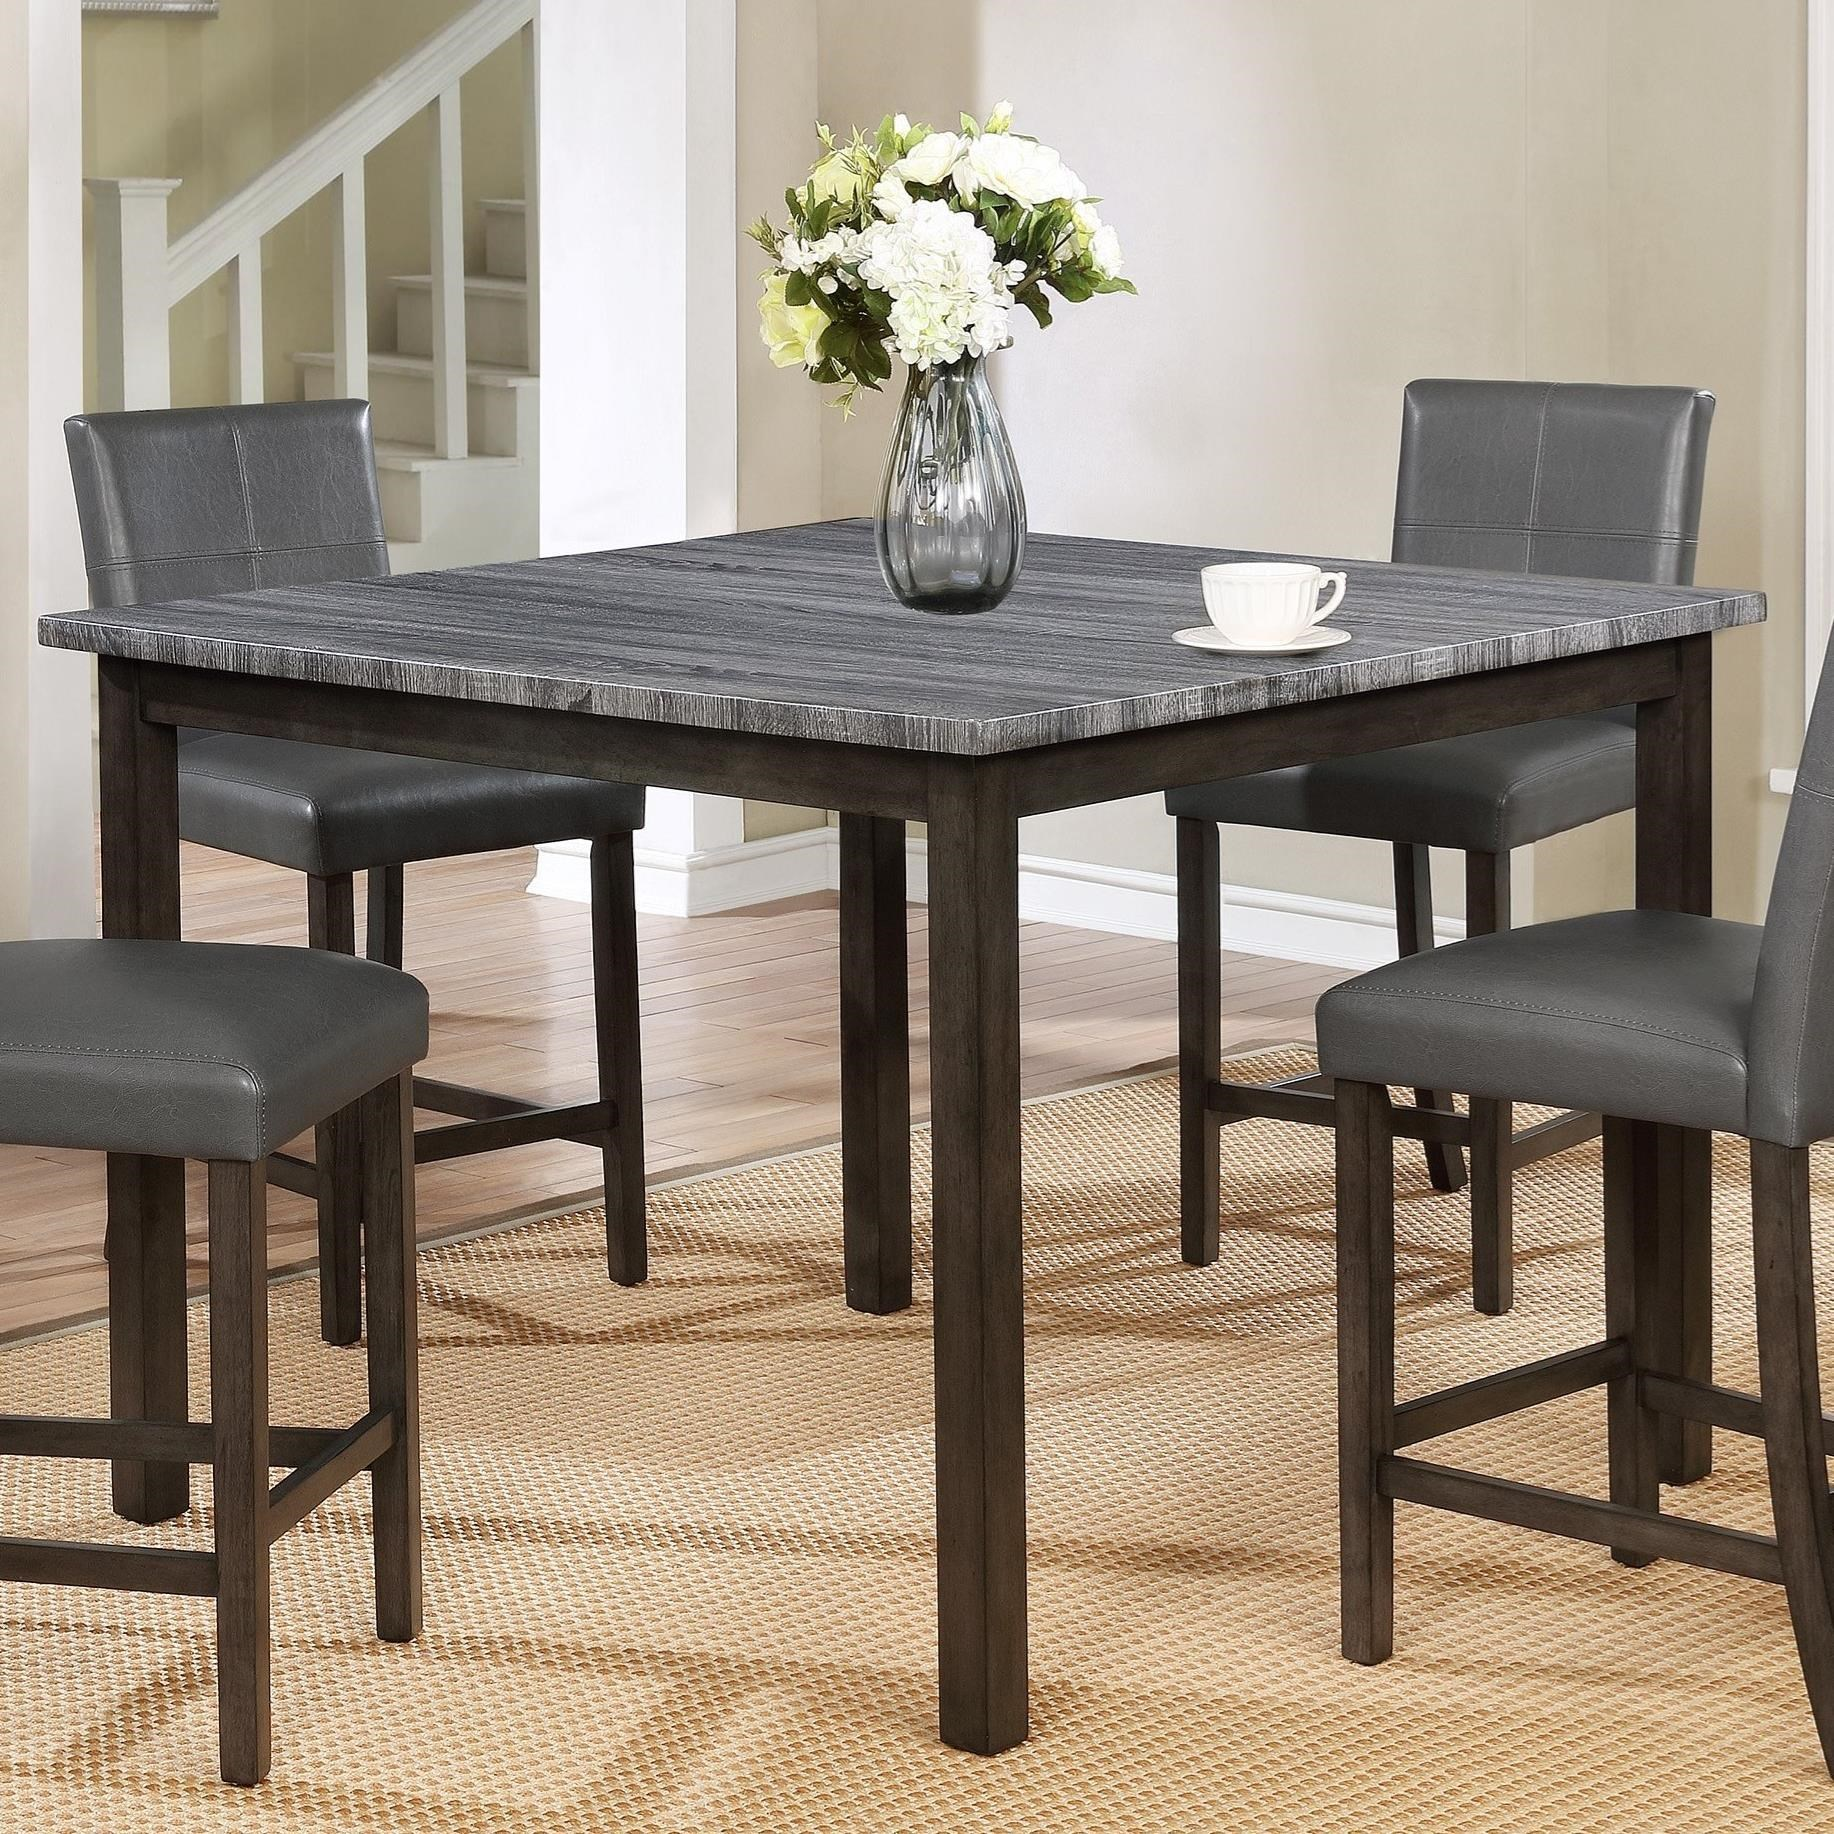 Crown Mark Pompei 2877GY-T-4848 Two Tone Counter Height Dining Table with Weathered Grey Top | Household Furniture | Pub Tables  sc 1 st  Household Furniture : two tone kitchen table - hauntedcathouse.org